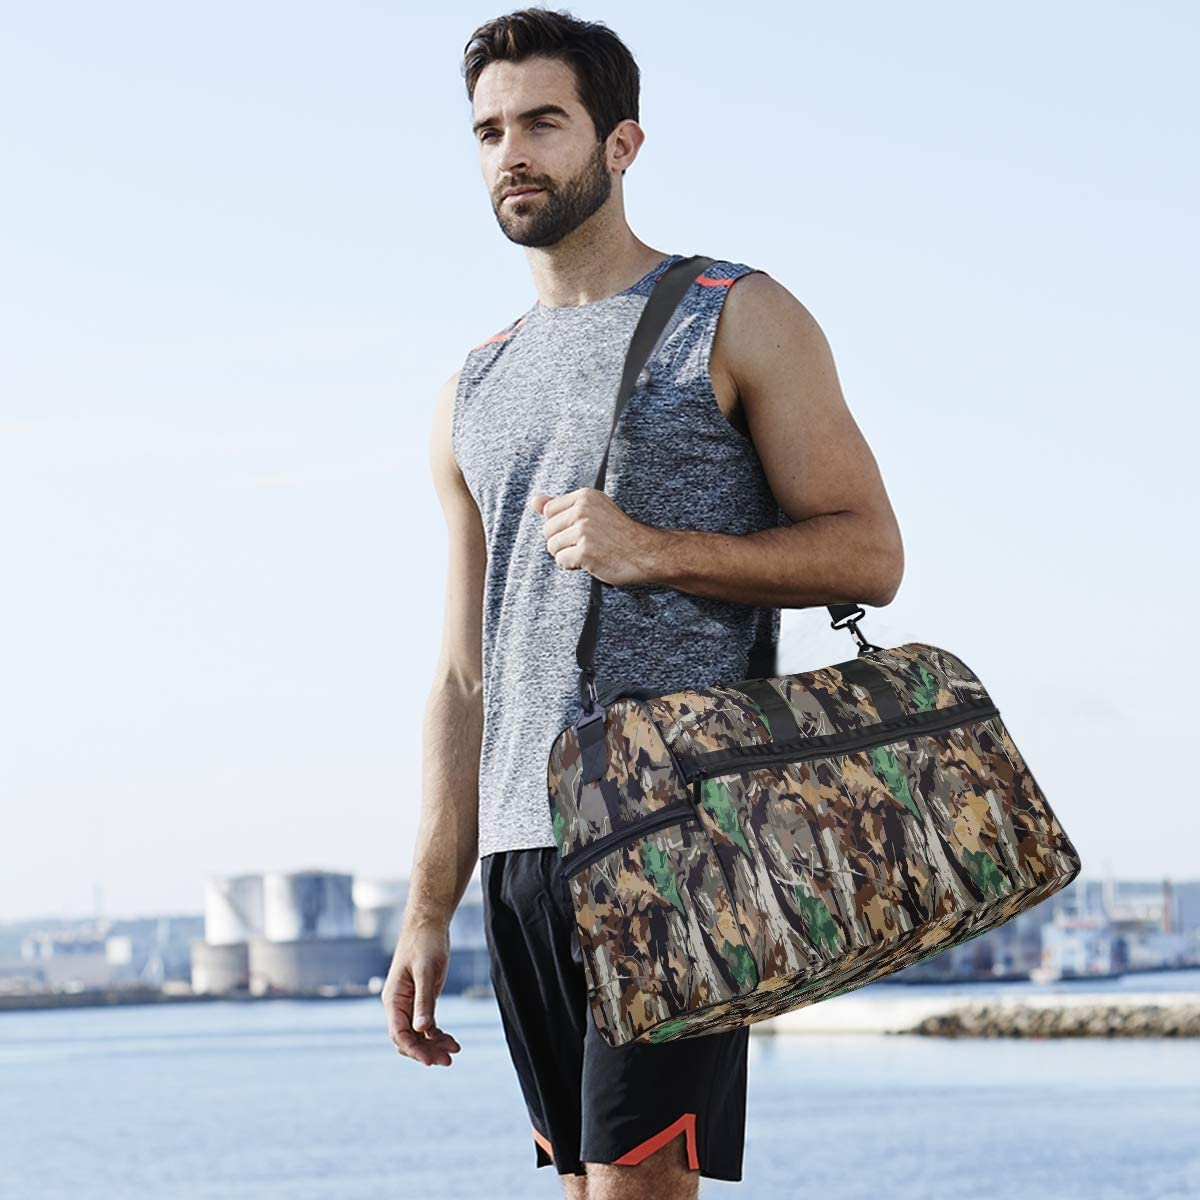 ALAZA Stylish Camouflage and Leaves Sports Gym Duffel Bag Travel Luggage Handbag Shoulder Bag with Shoes Compartment for Men Women